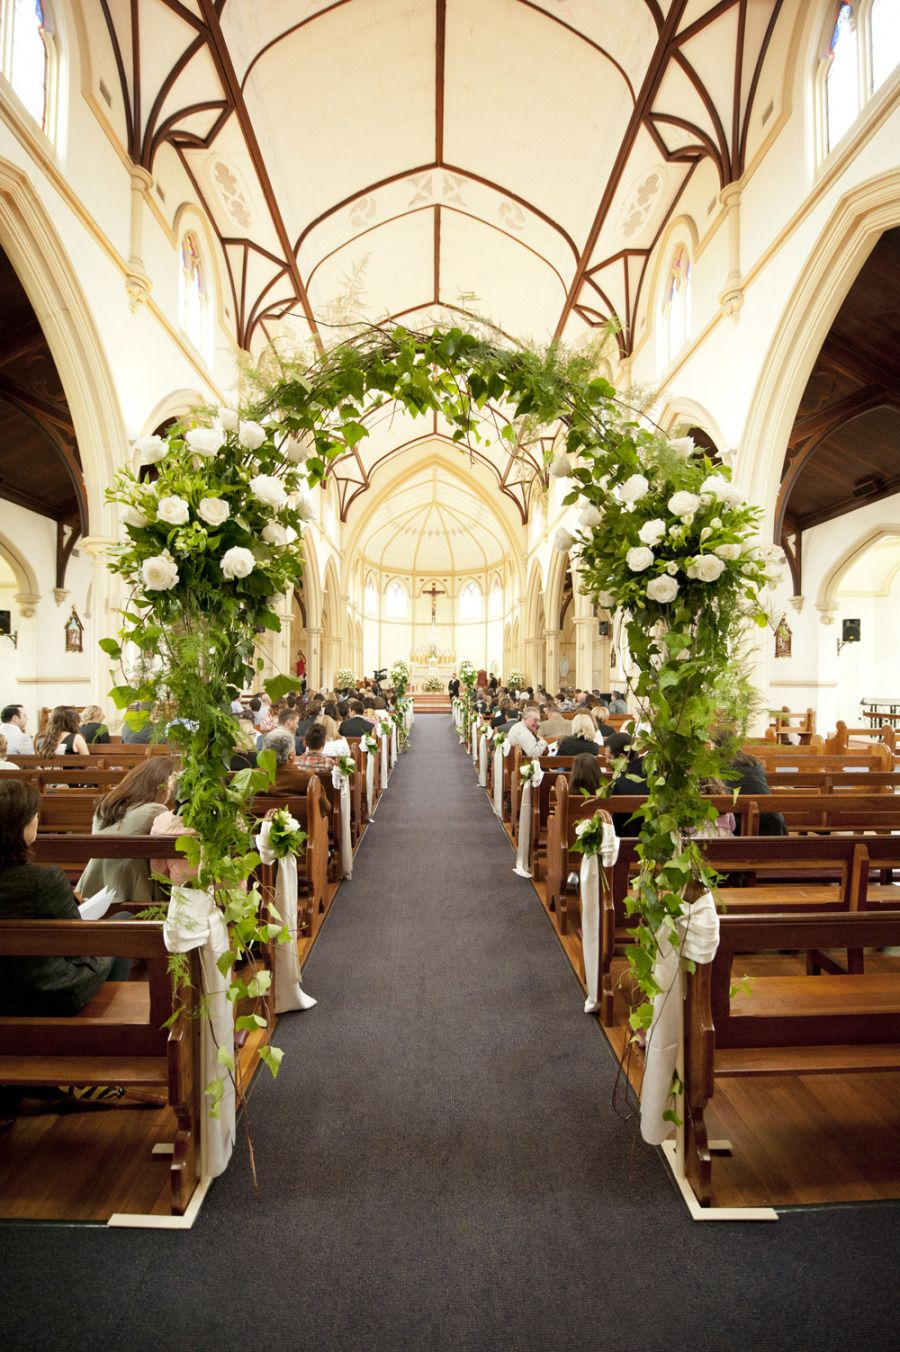 Traditional perth wedding perth arch and churches see more of the wedding on smp httpstylemeprettyaustralia weddingswestern australia auperth20140303traditional perth wedding junglespirit